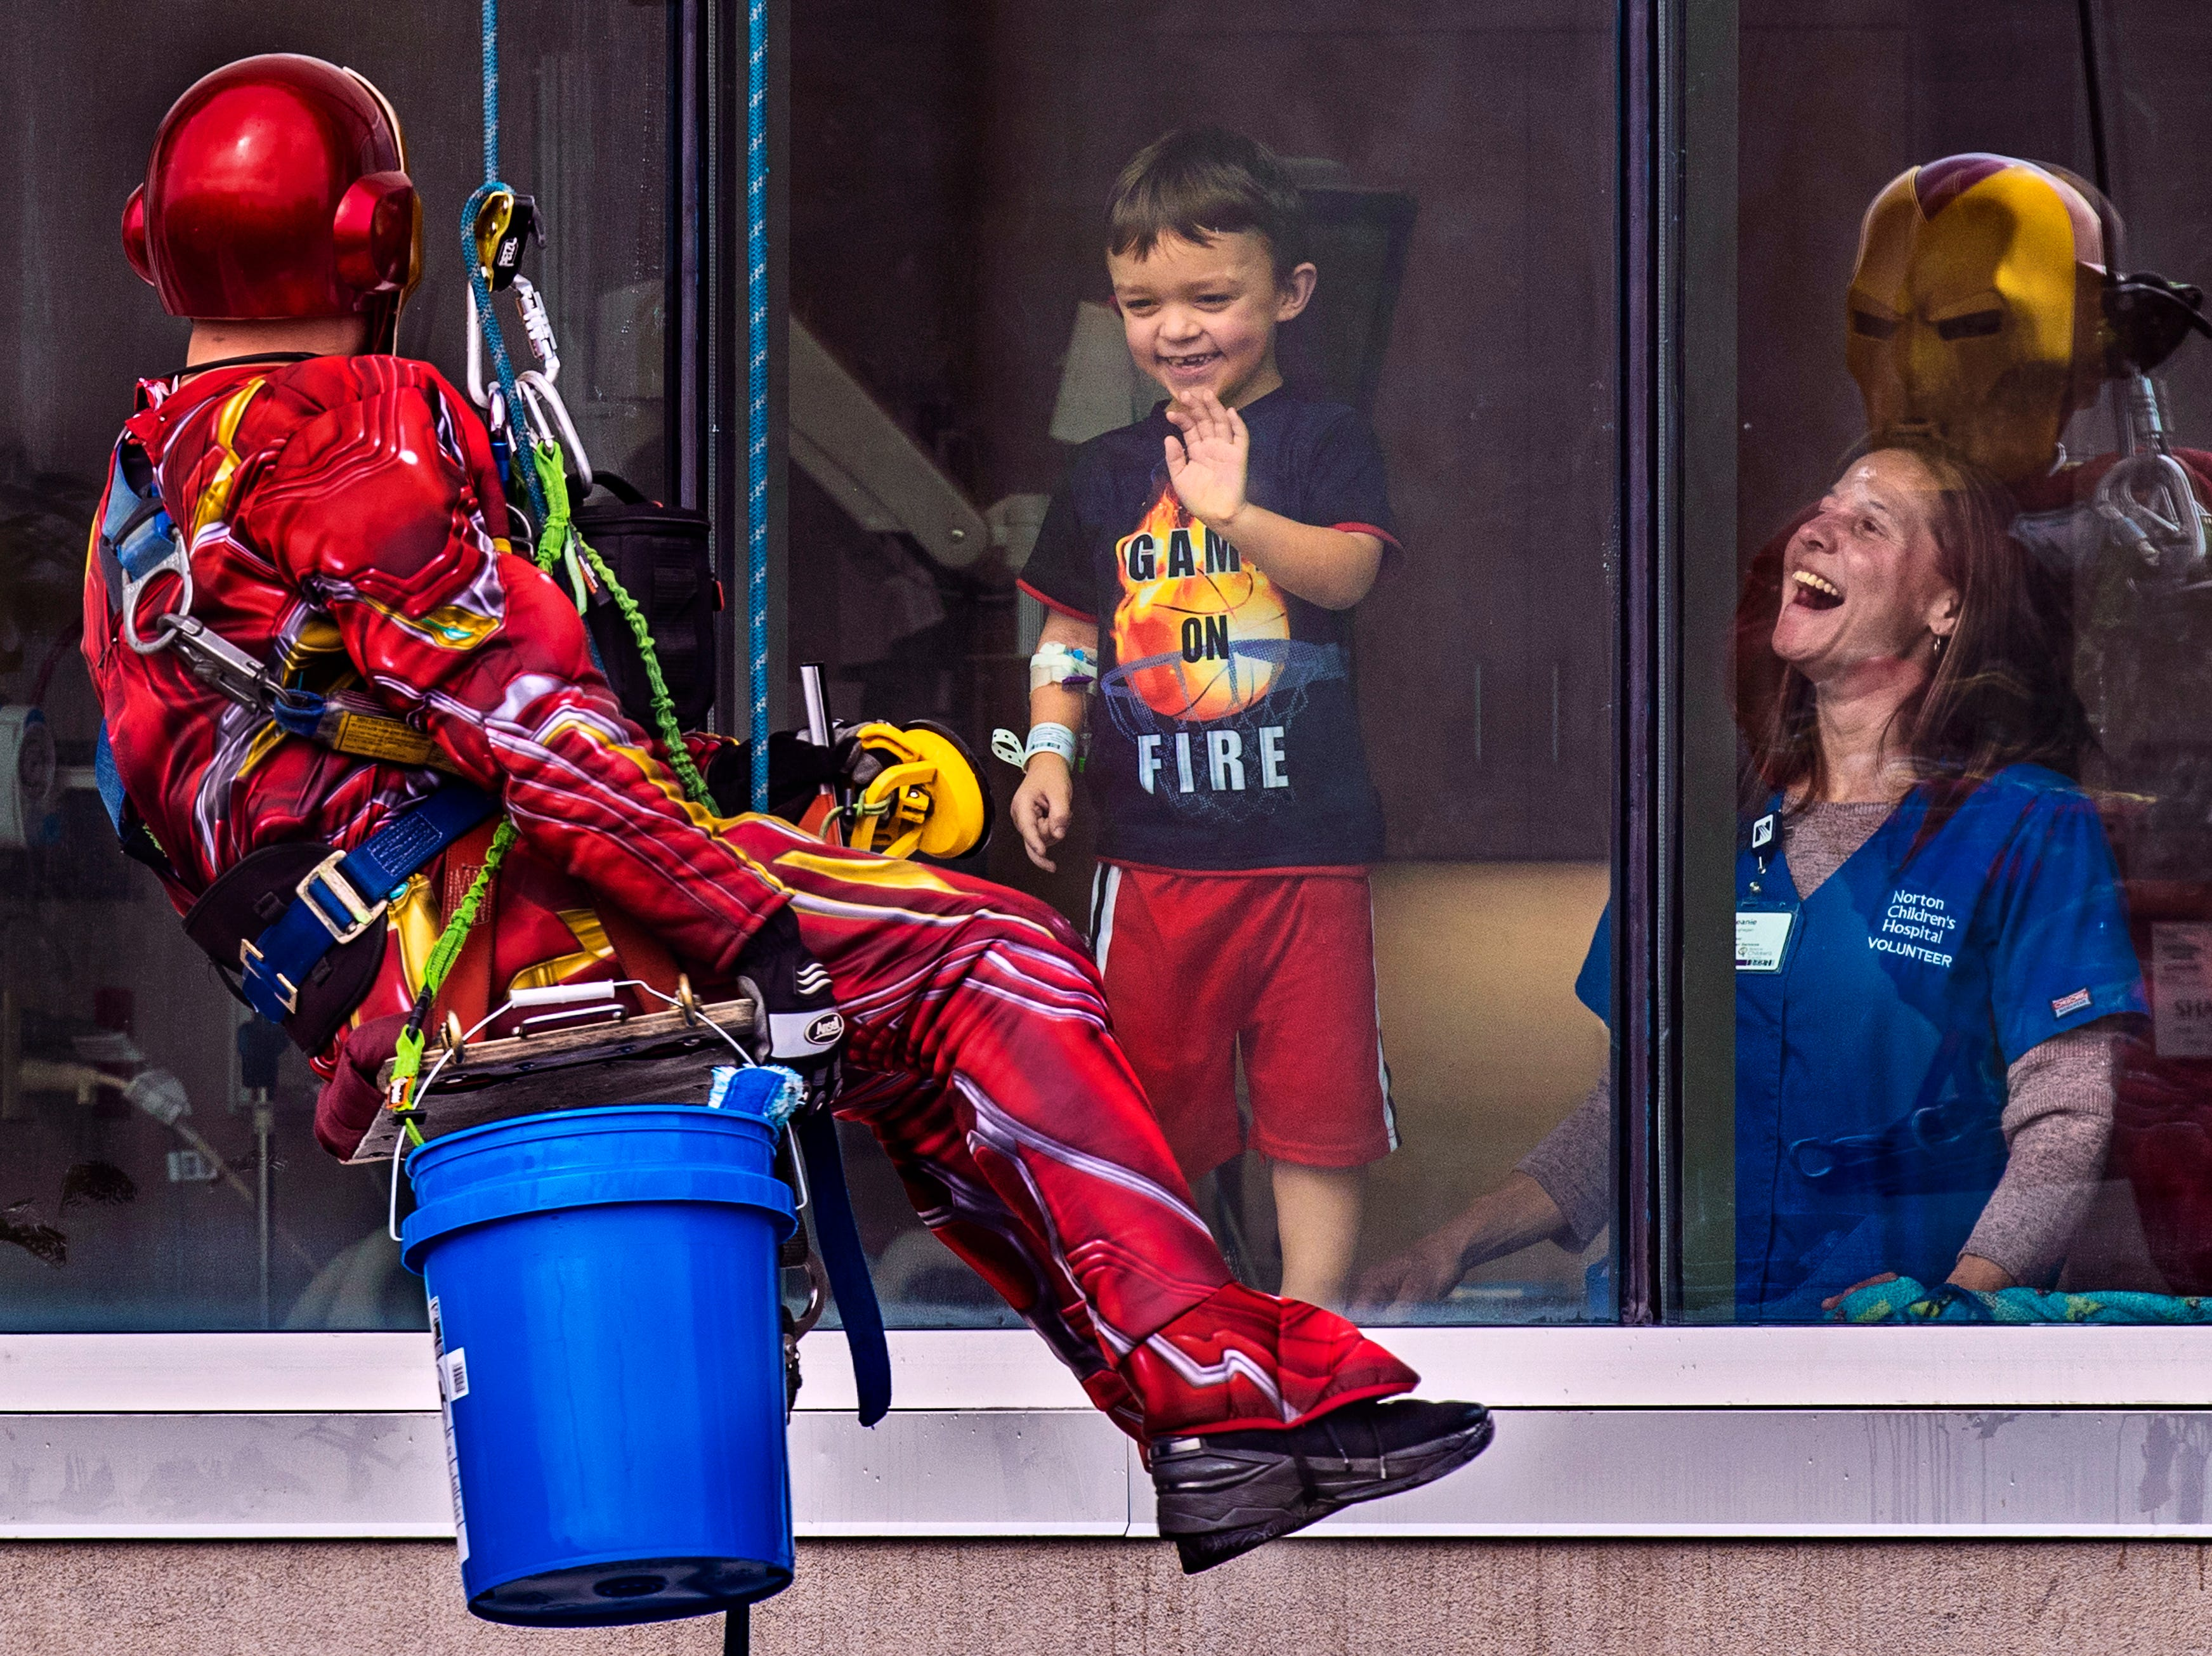 Joe Haist, from left, shares a moment dressed as Iron Man with Brennen Wilkerson, 6, as the young boy and volunteer nurse Beanie Geoghegan look on as Pro Clean International cleaned windows at Norton Children's Hospital on Thursday dressed as super heroes. Feb. 21, 2019